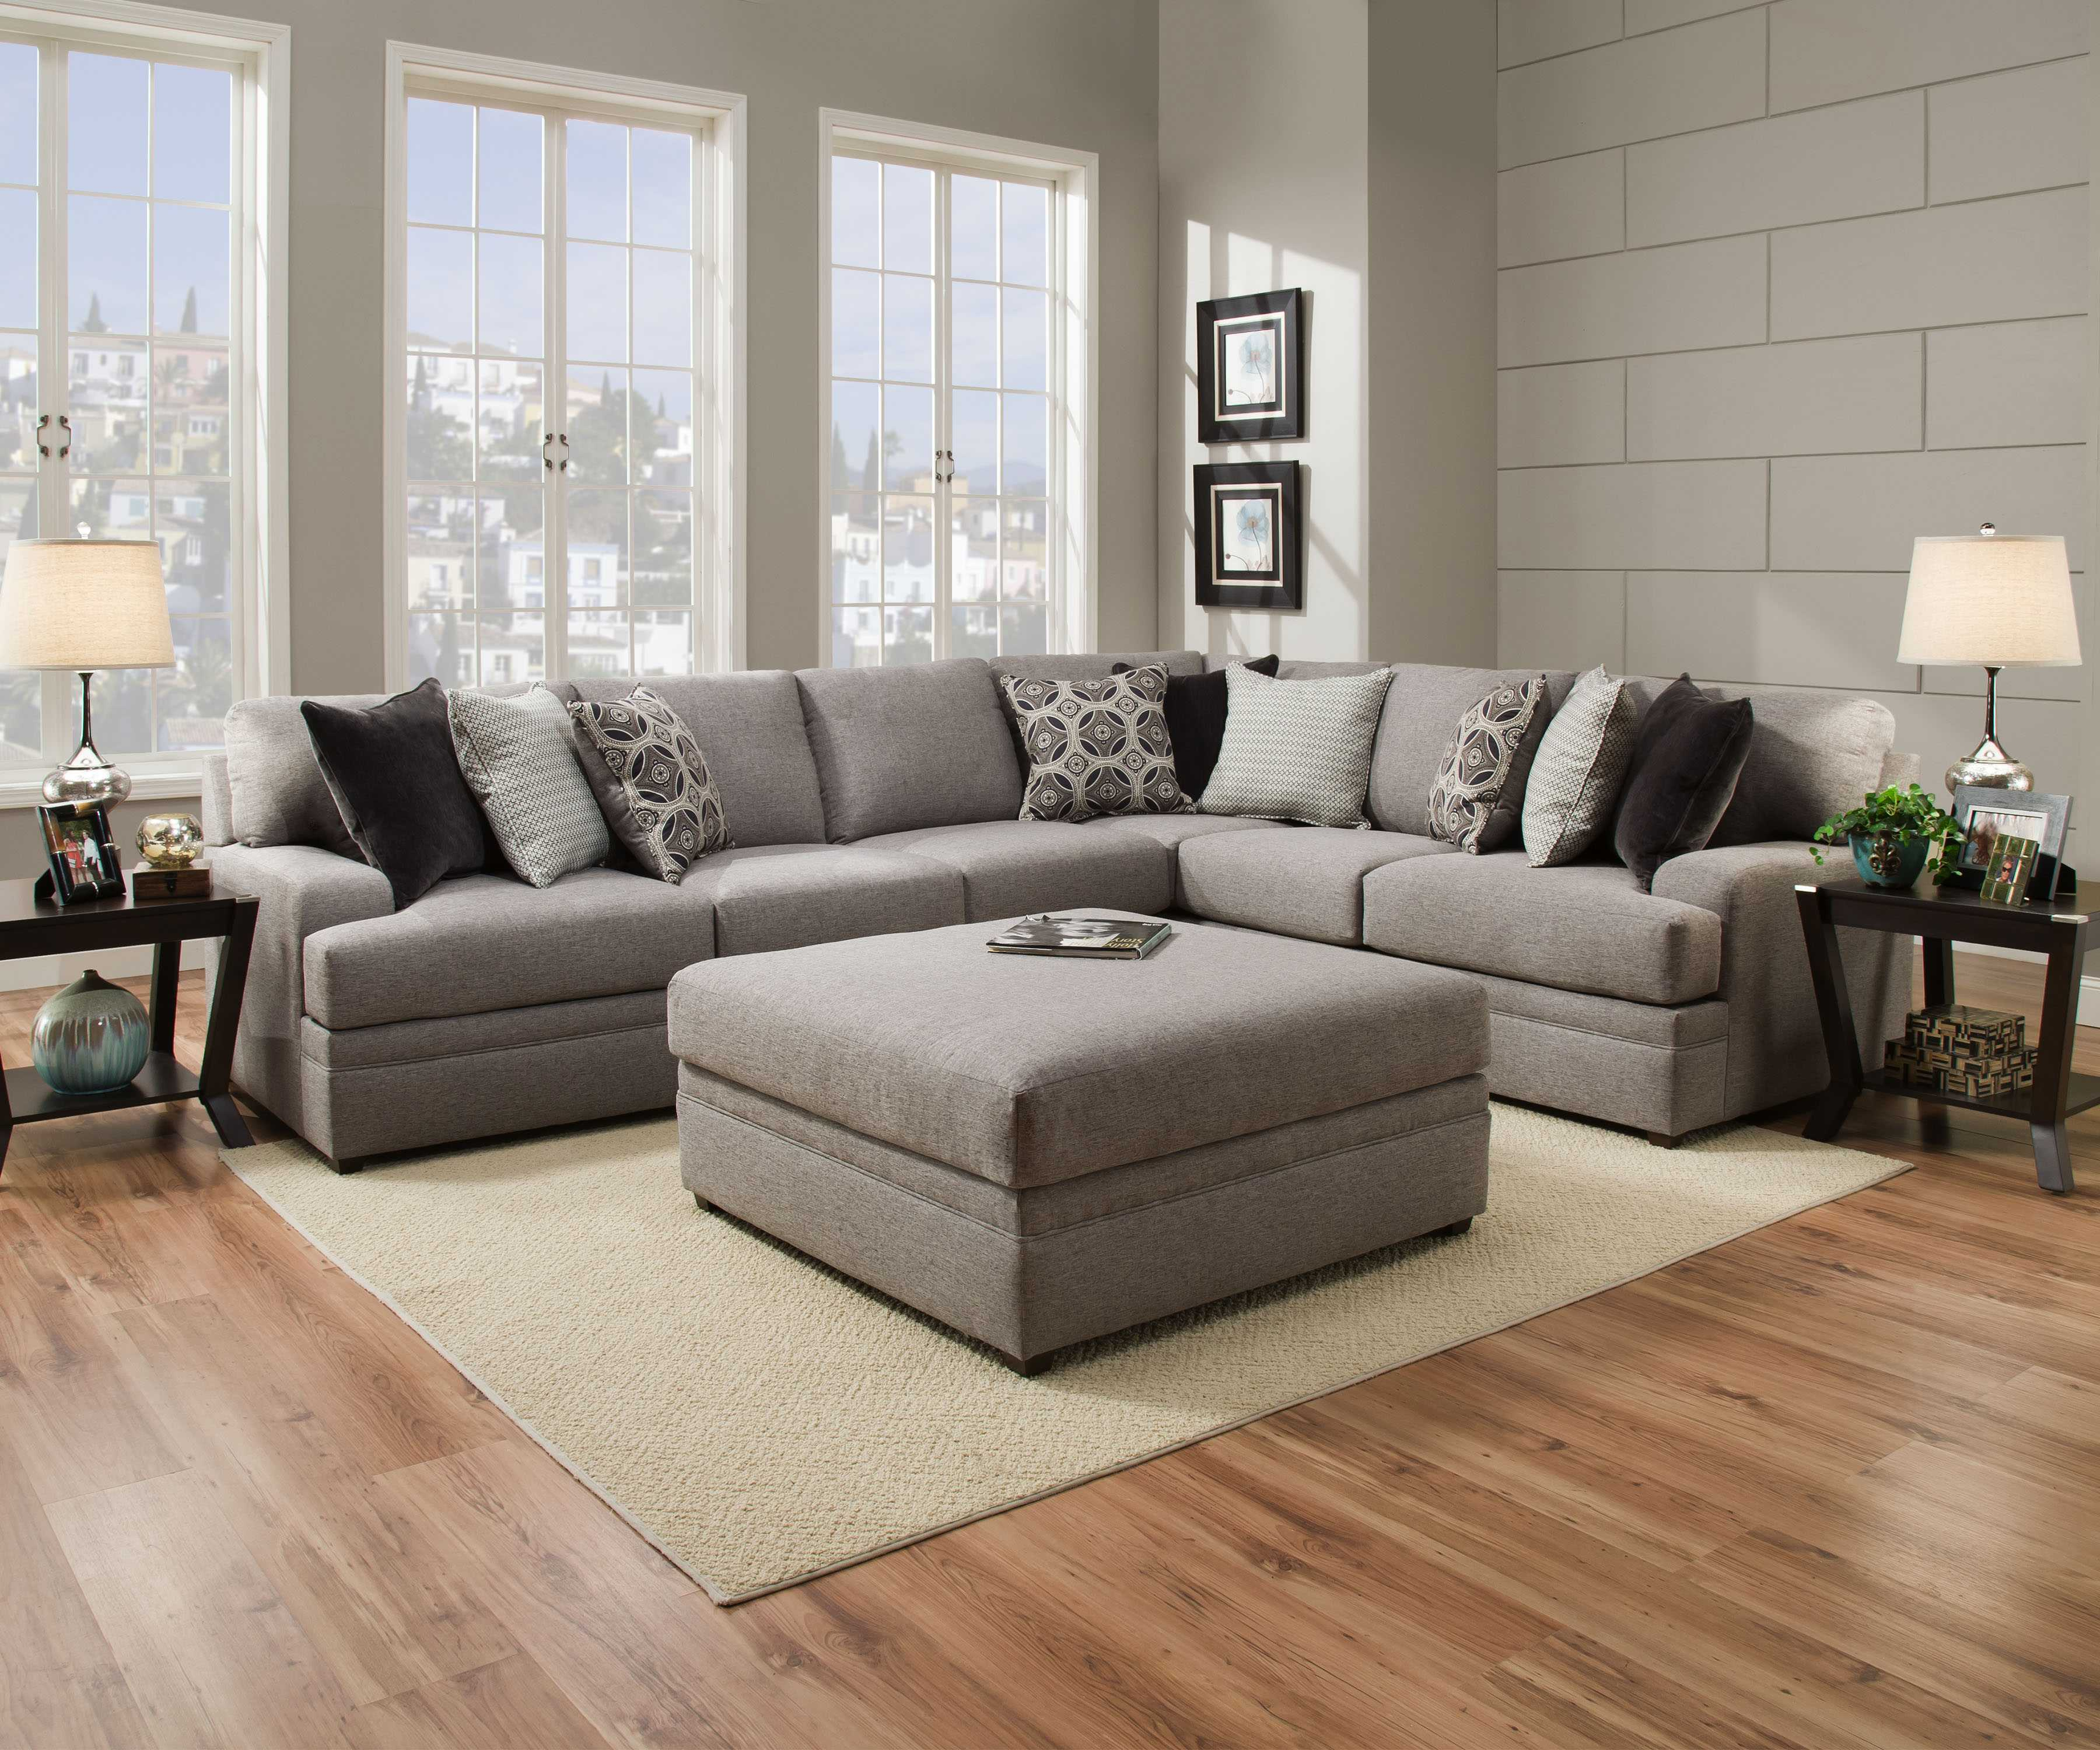 Hd Clearance Living Room Sets Ashleehusseyphoto in 10 Some of the Coolest Ideas How to Improve Living Room Sets On Clearance